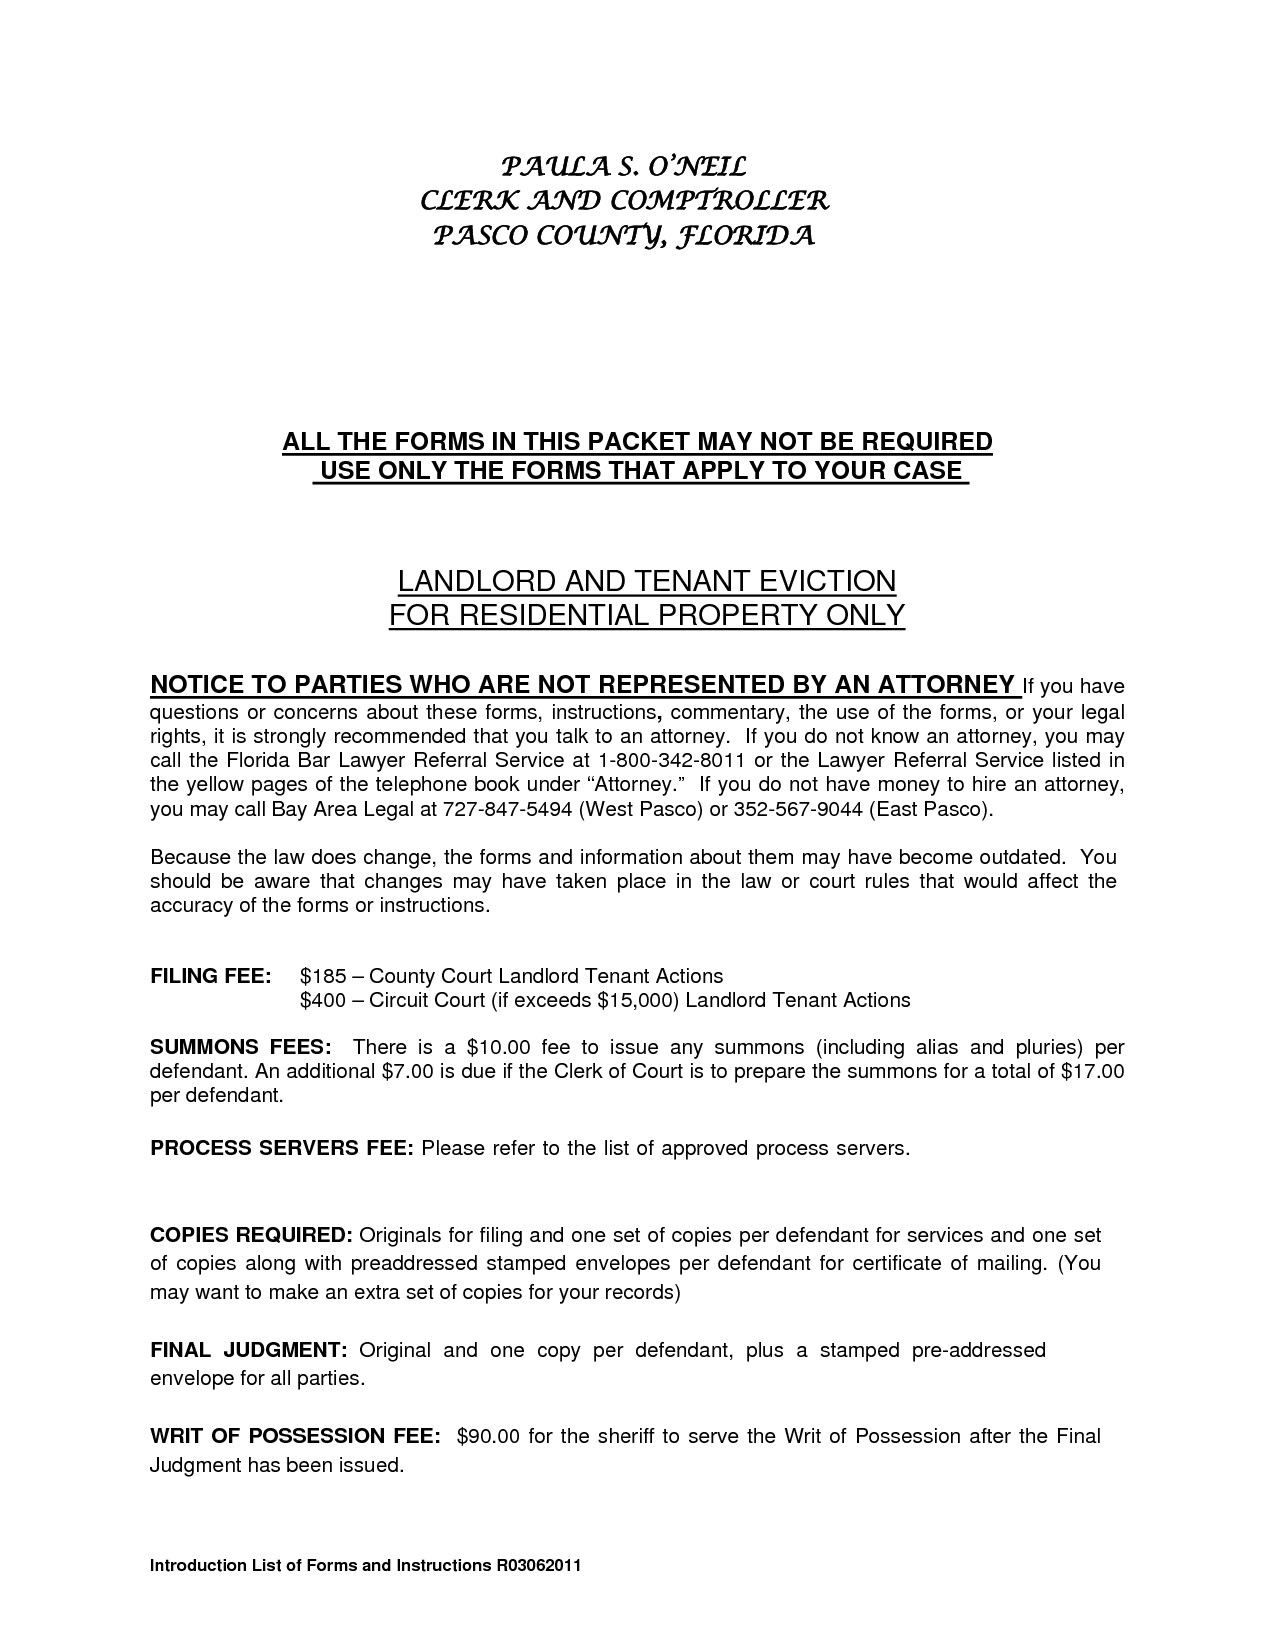 Rental Agreement Form Between Landlord And Tenant